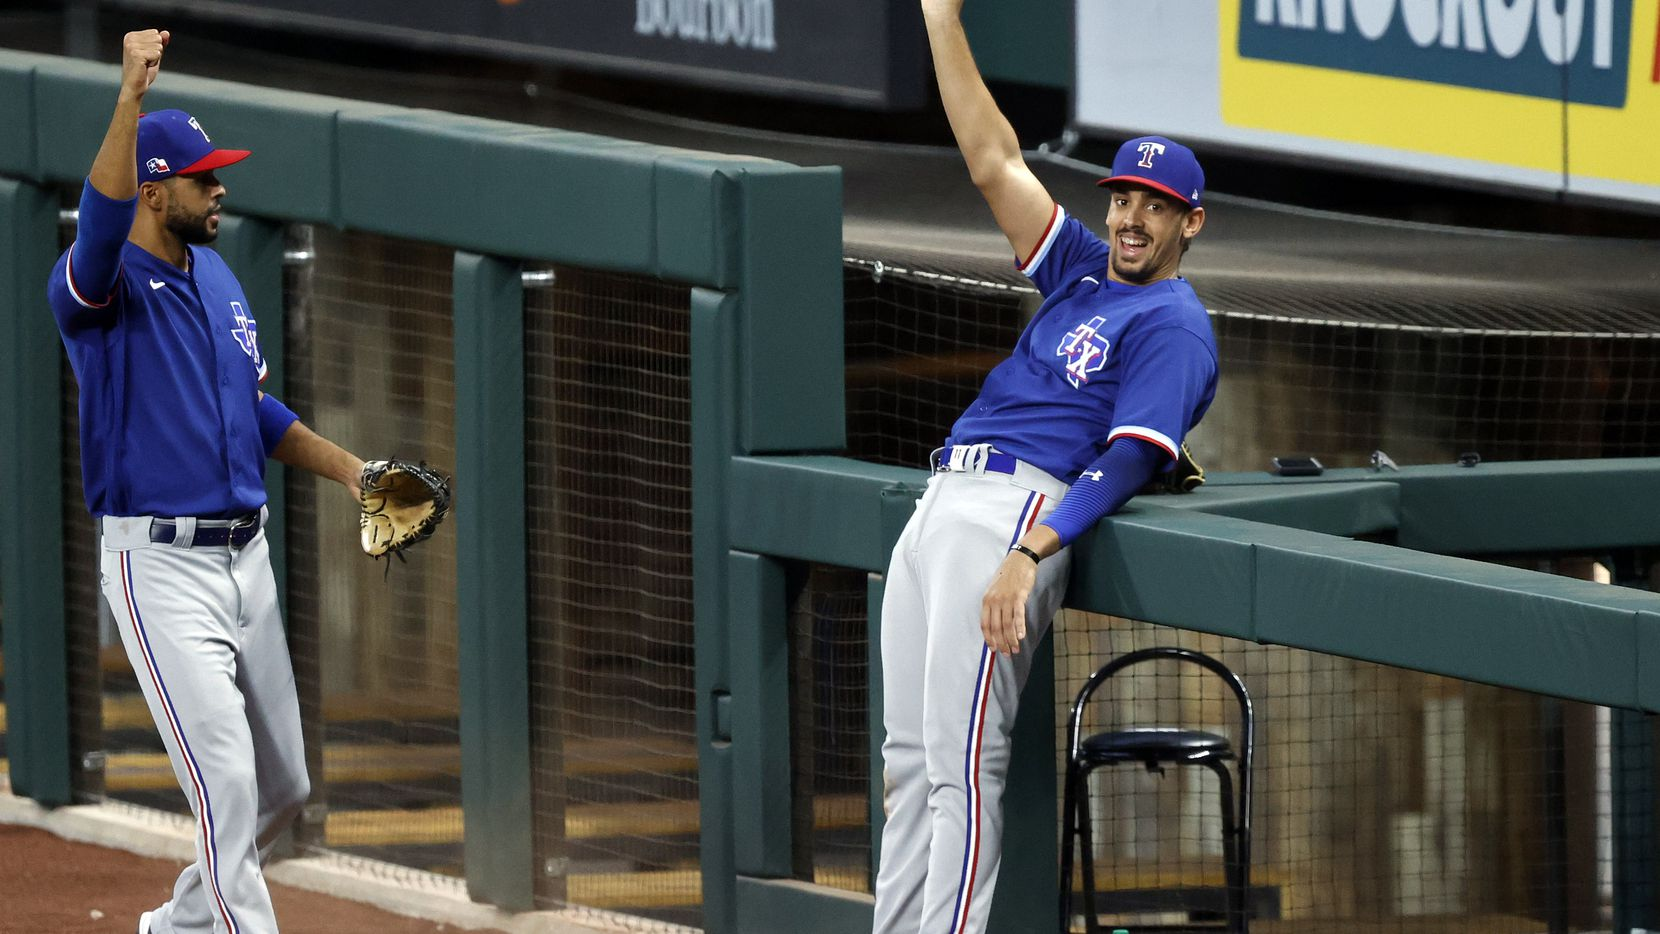 Texas Rangers first baseman Ronald Guzman reacts after snaring a fly ball over the photo well railing during a simulated game at Summer Camp inside Globe Life Field in Arlington, Texas, Thursday, July 9, 2020. (Tom Fox/The Dallas Morning News)